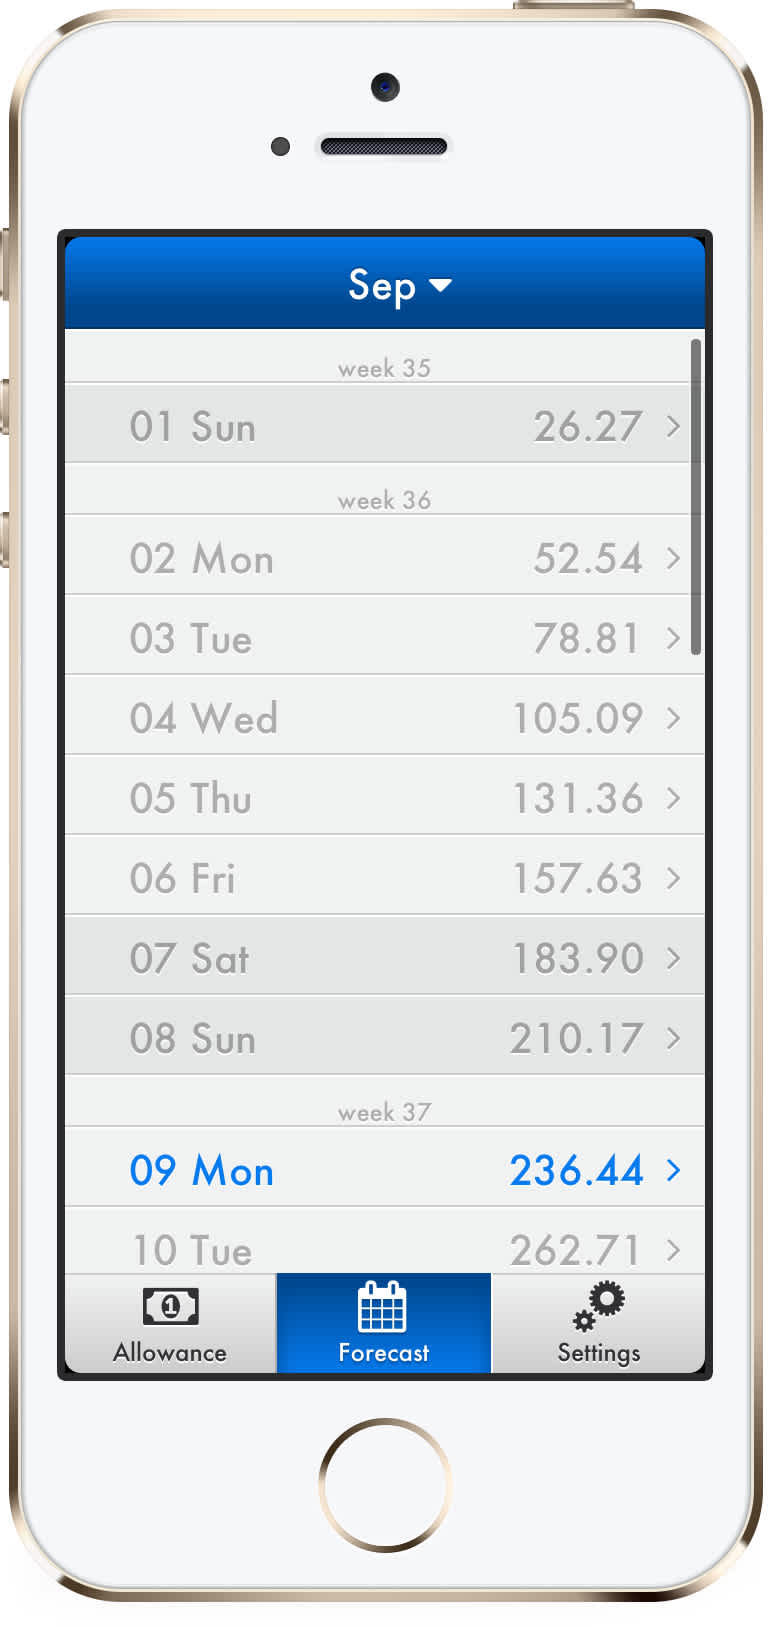 iOS money forecast screen